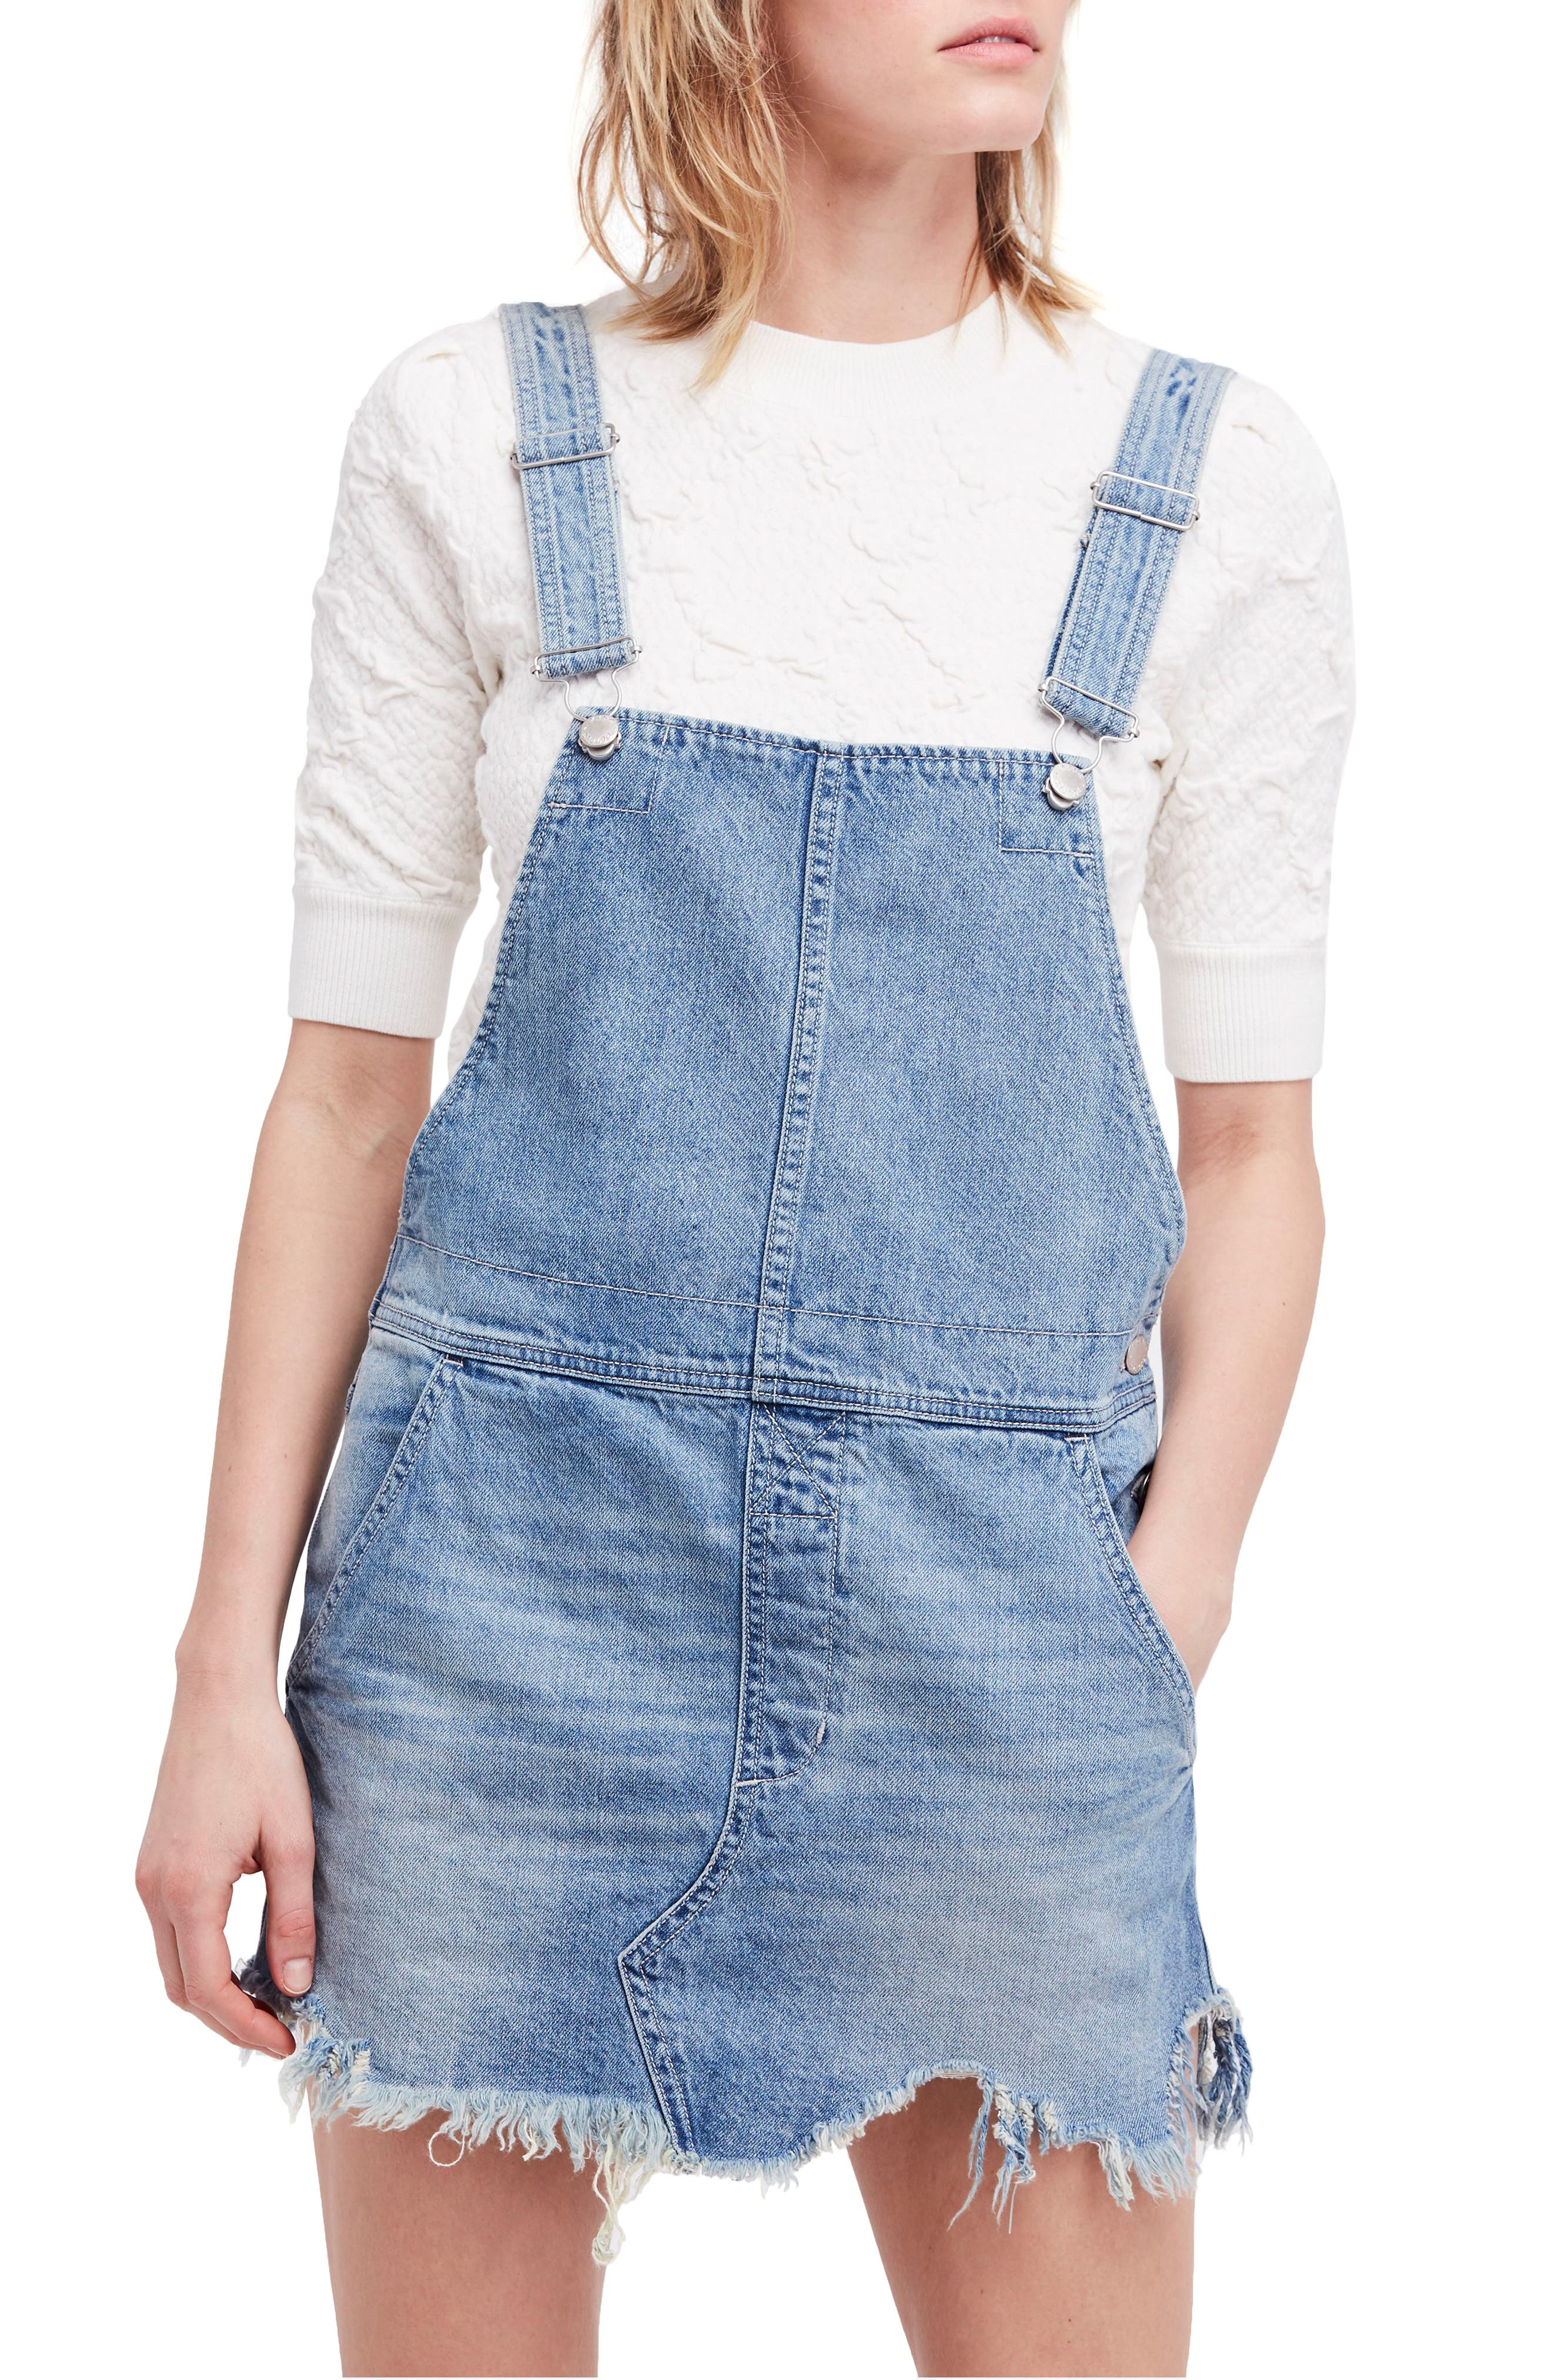 Torn-Up Skirt Overalls,                         Main,                         color, Blue